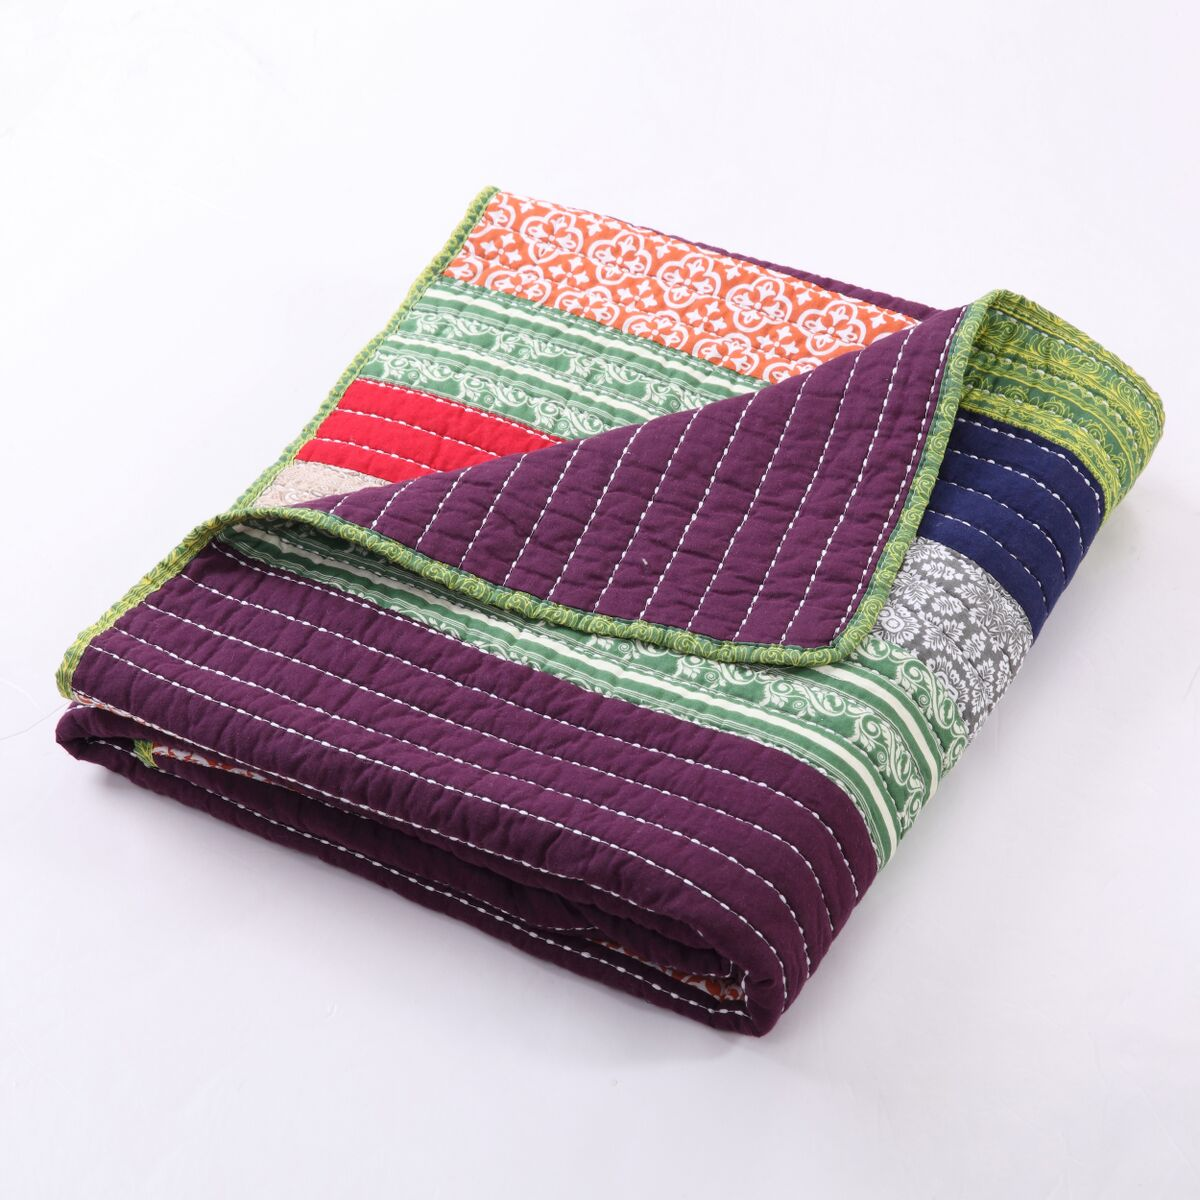 Marley Multi Accessory Throw